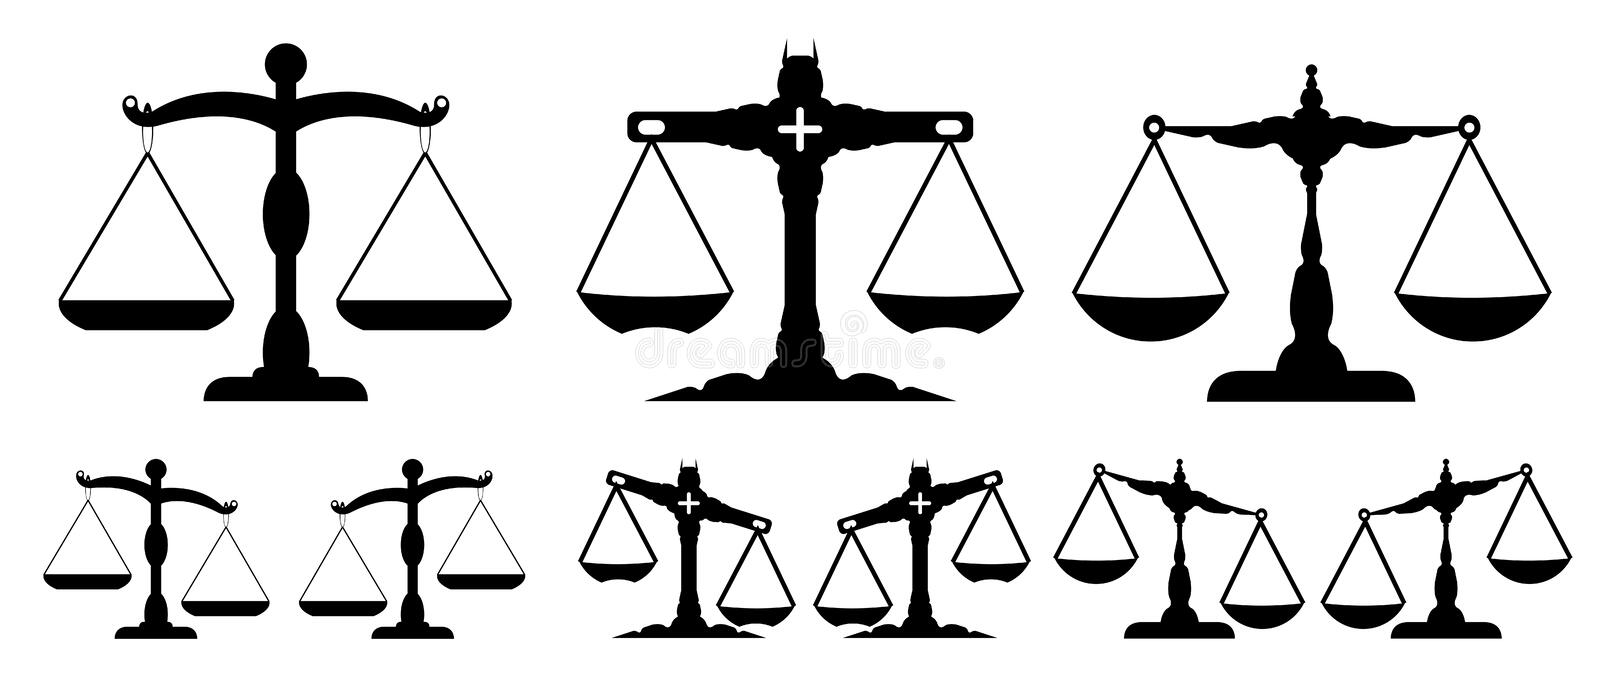 The scale of justice. Black scale on the white background